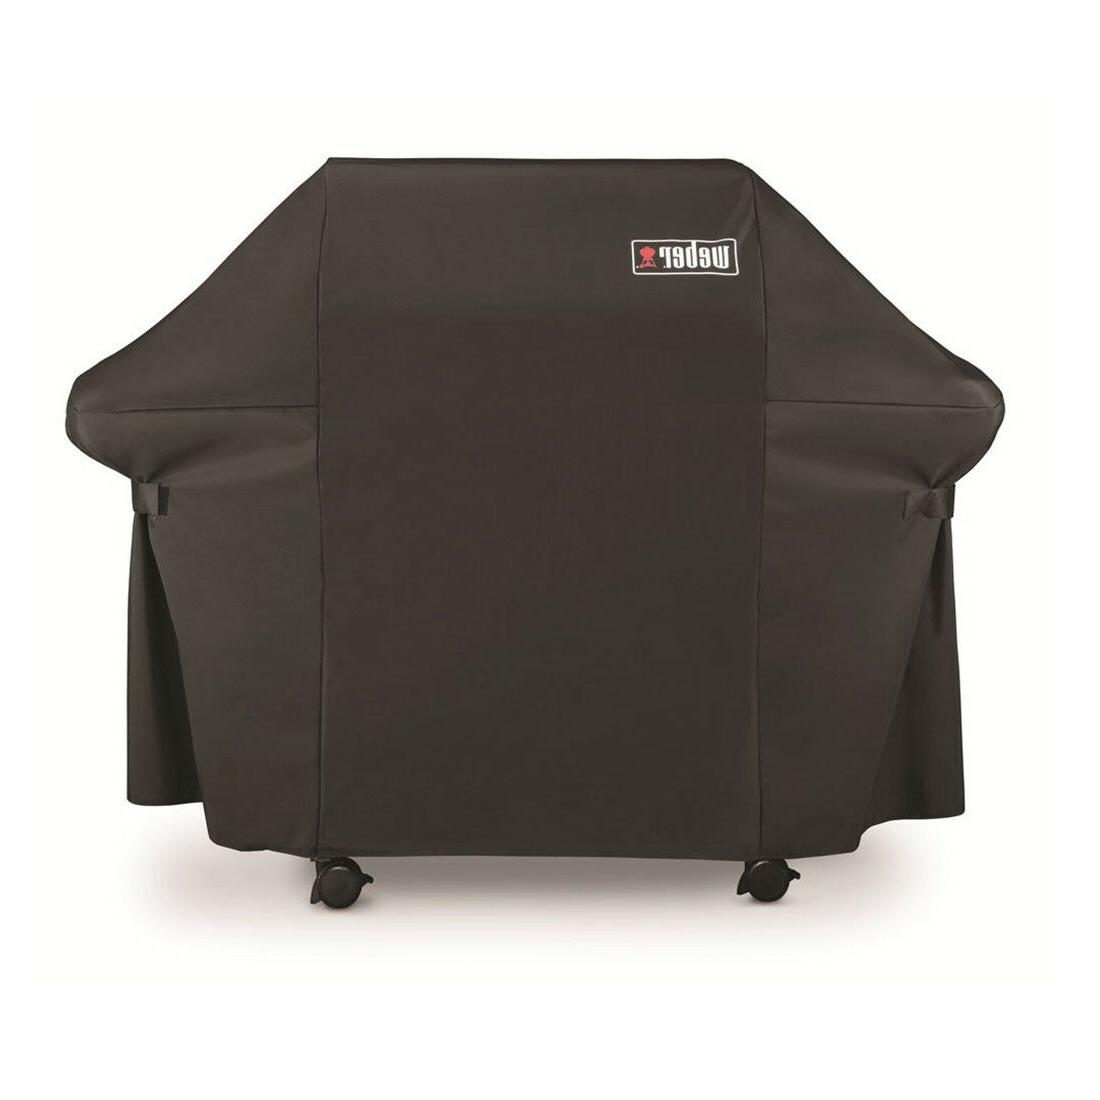 7107 grill cover 44in x 60in